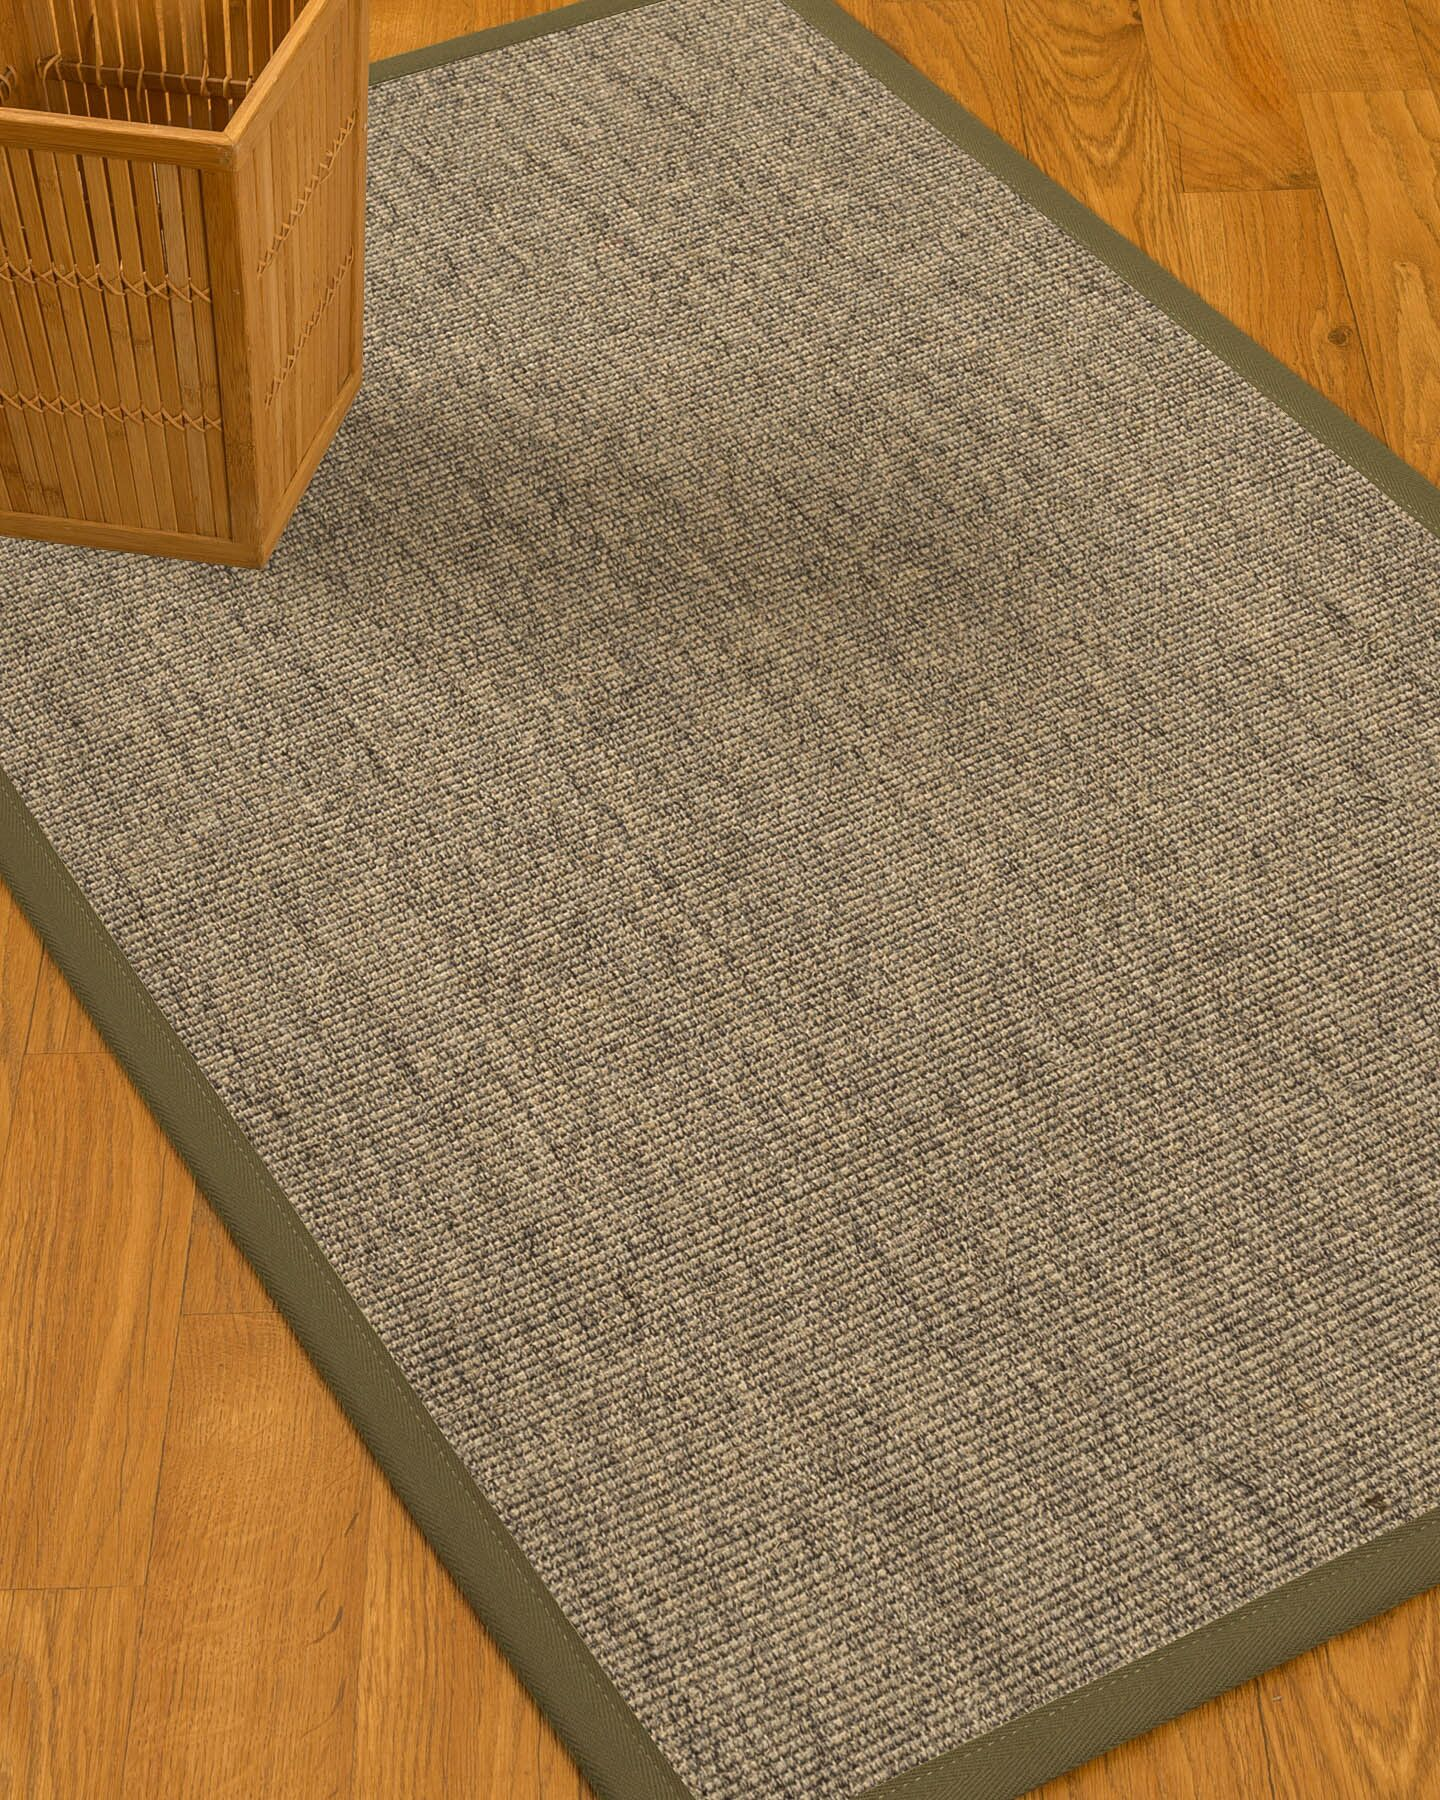 Mahan Border Hand-Woven Gray Area Rug Rug Size: Rectangle 6' x 9', Rug Pad Included: Yes